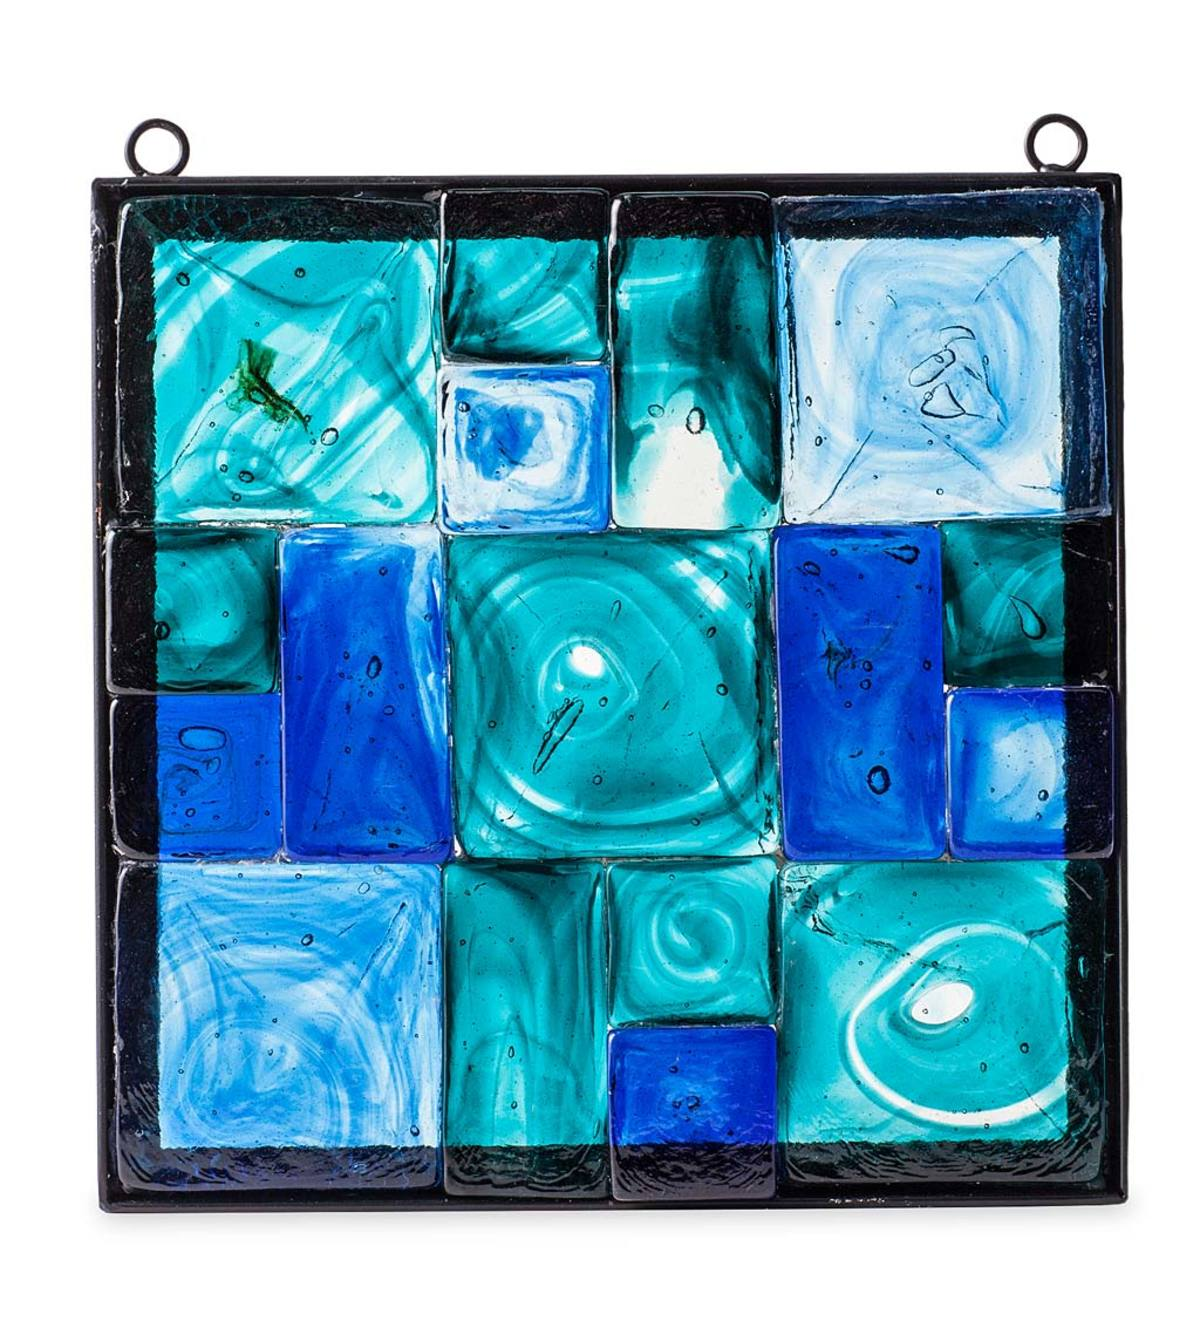 Metal-Framed Colorful Glass Block Wall Art - Blue